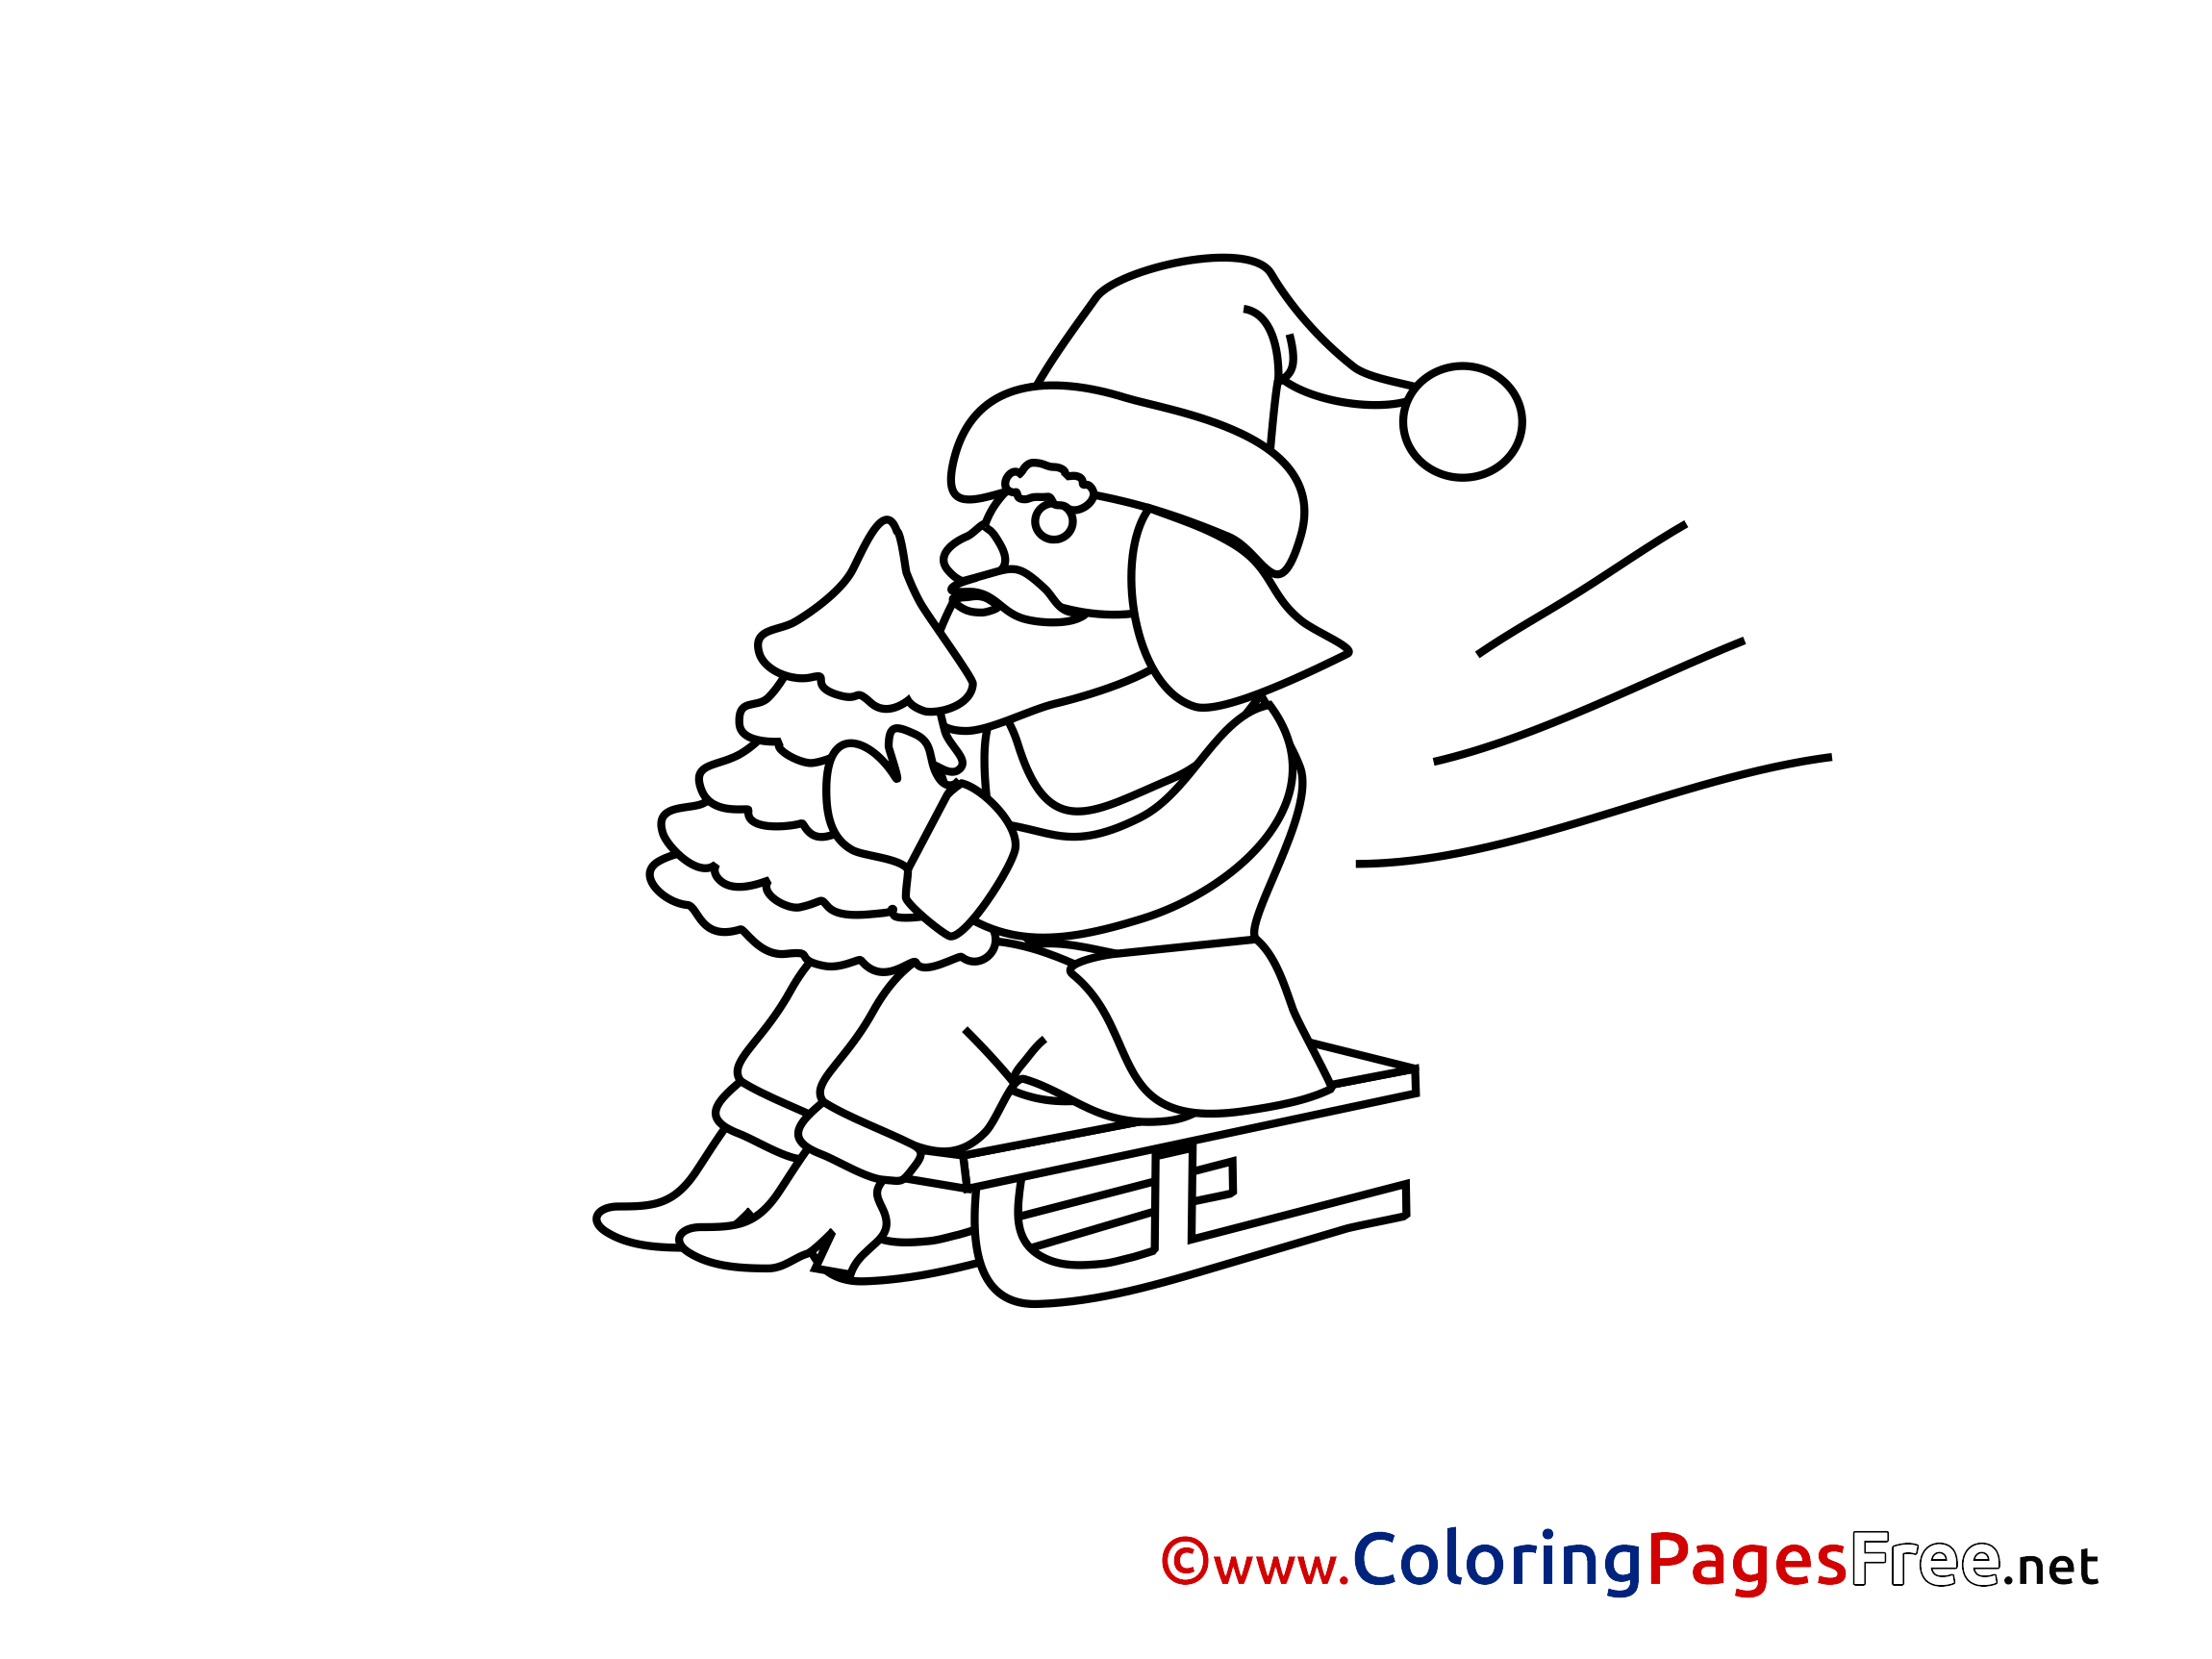 Sled Advent Coloring Pages free